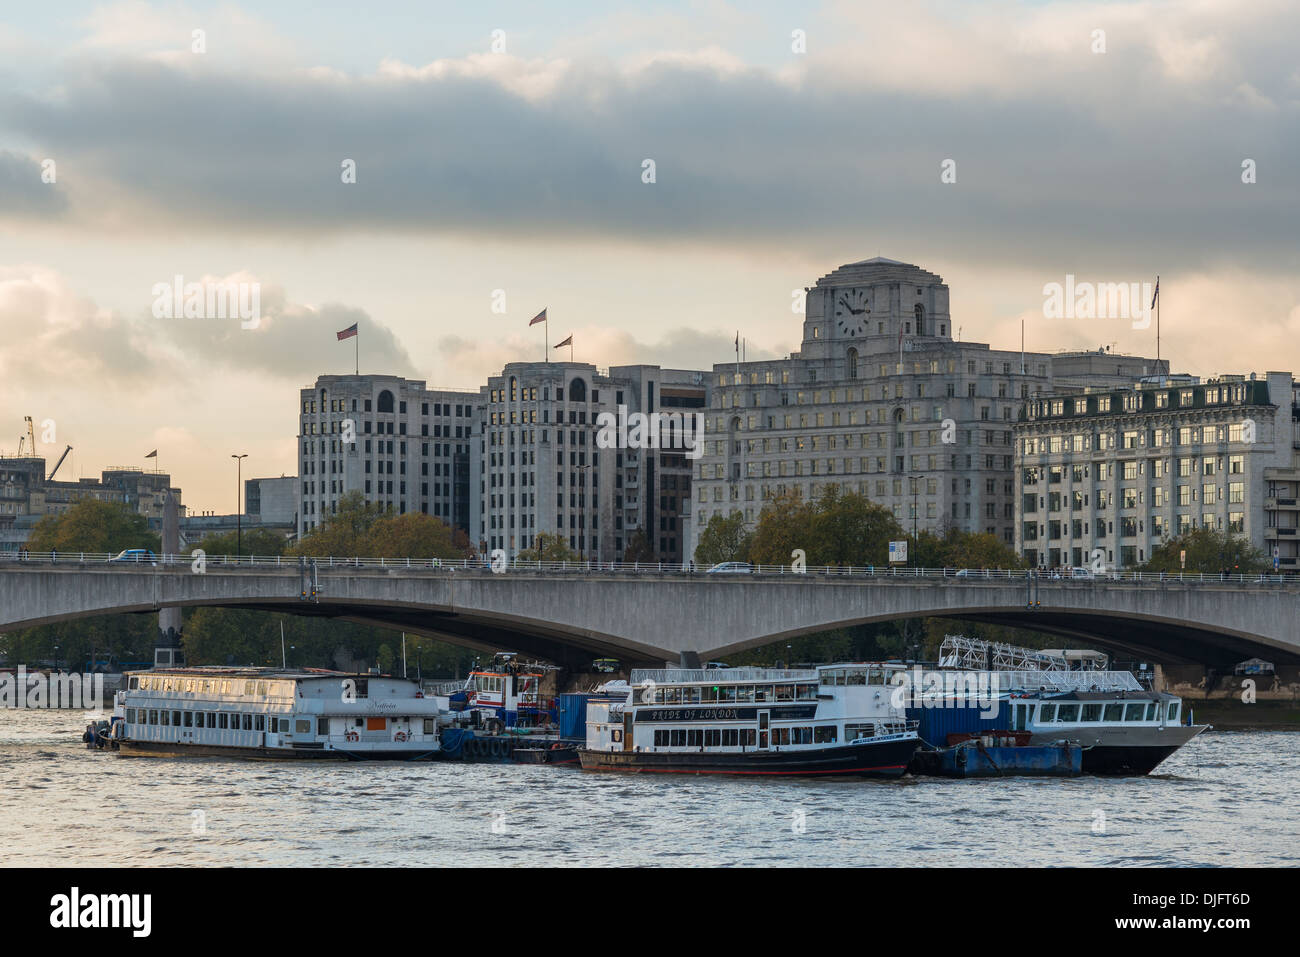 Thames pleasure cruises pass under Waterloo Bridge; landmark building Shell -Mex House forms the backdrop - Stock Image